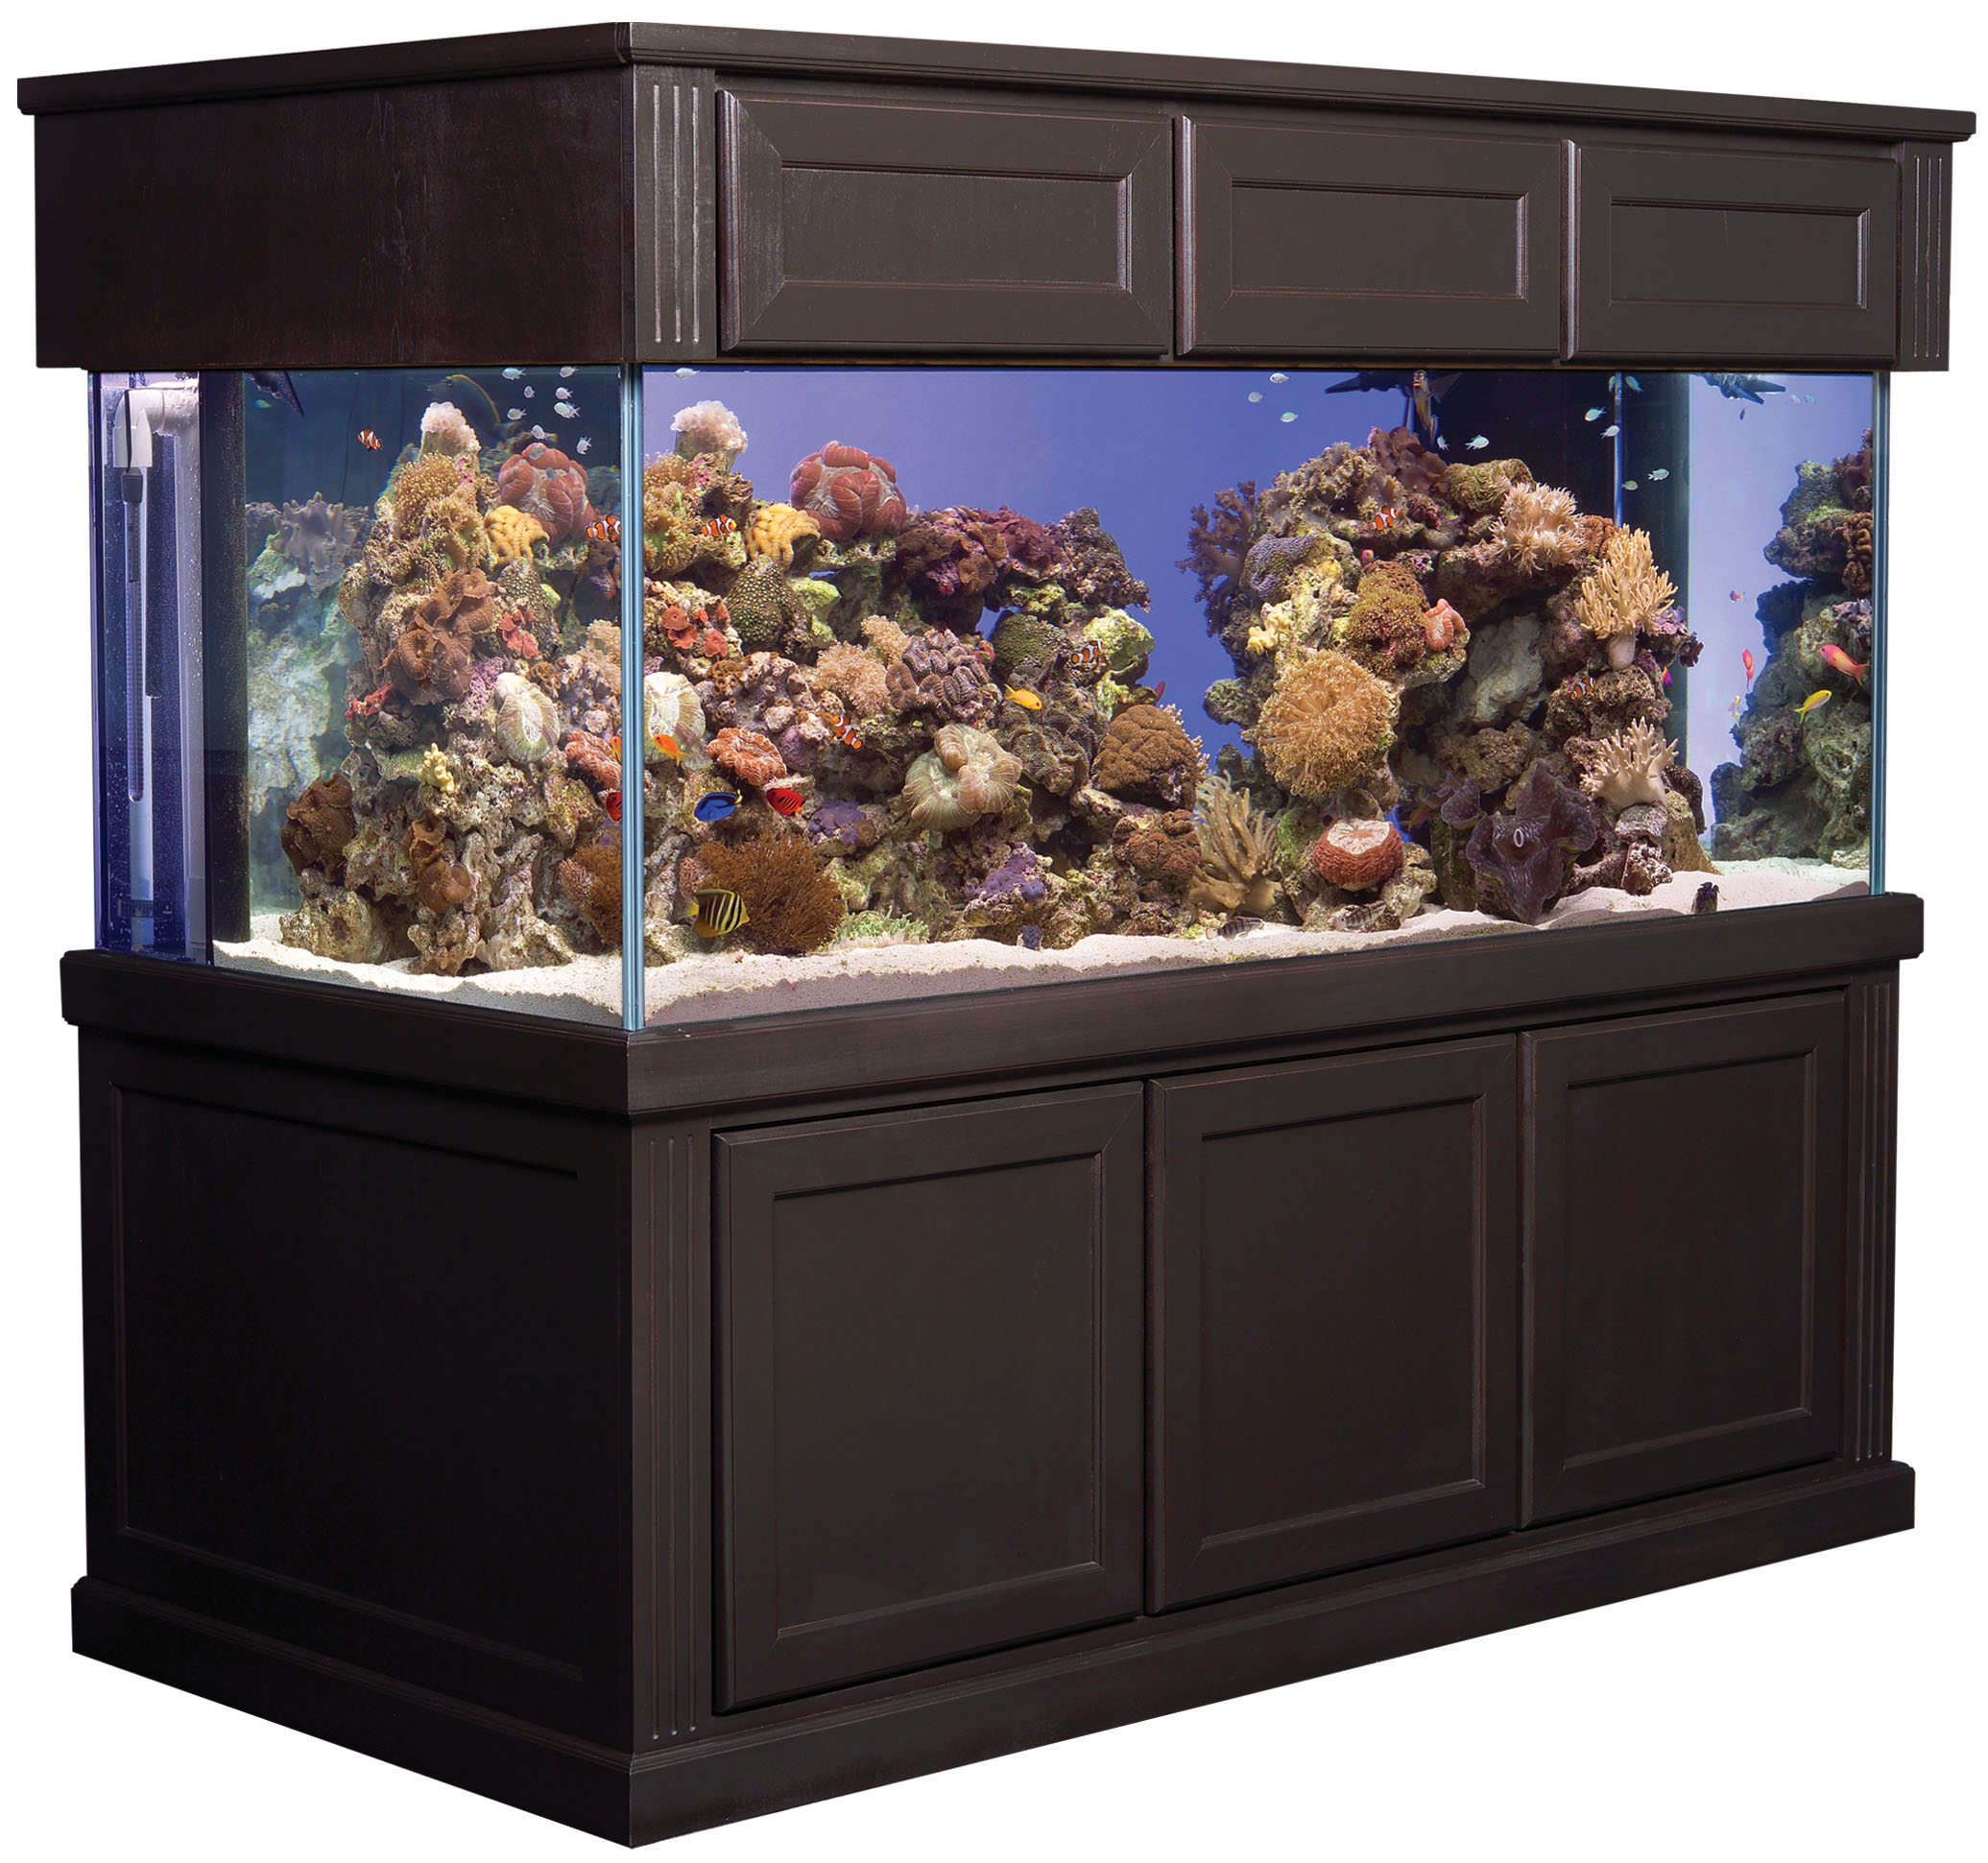 Marineland Shop & Buy Glass Aquariums and Tanks : Questions, Answers